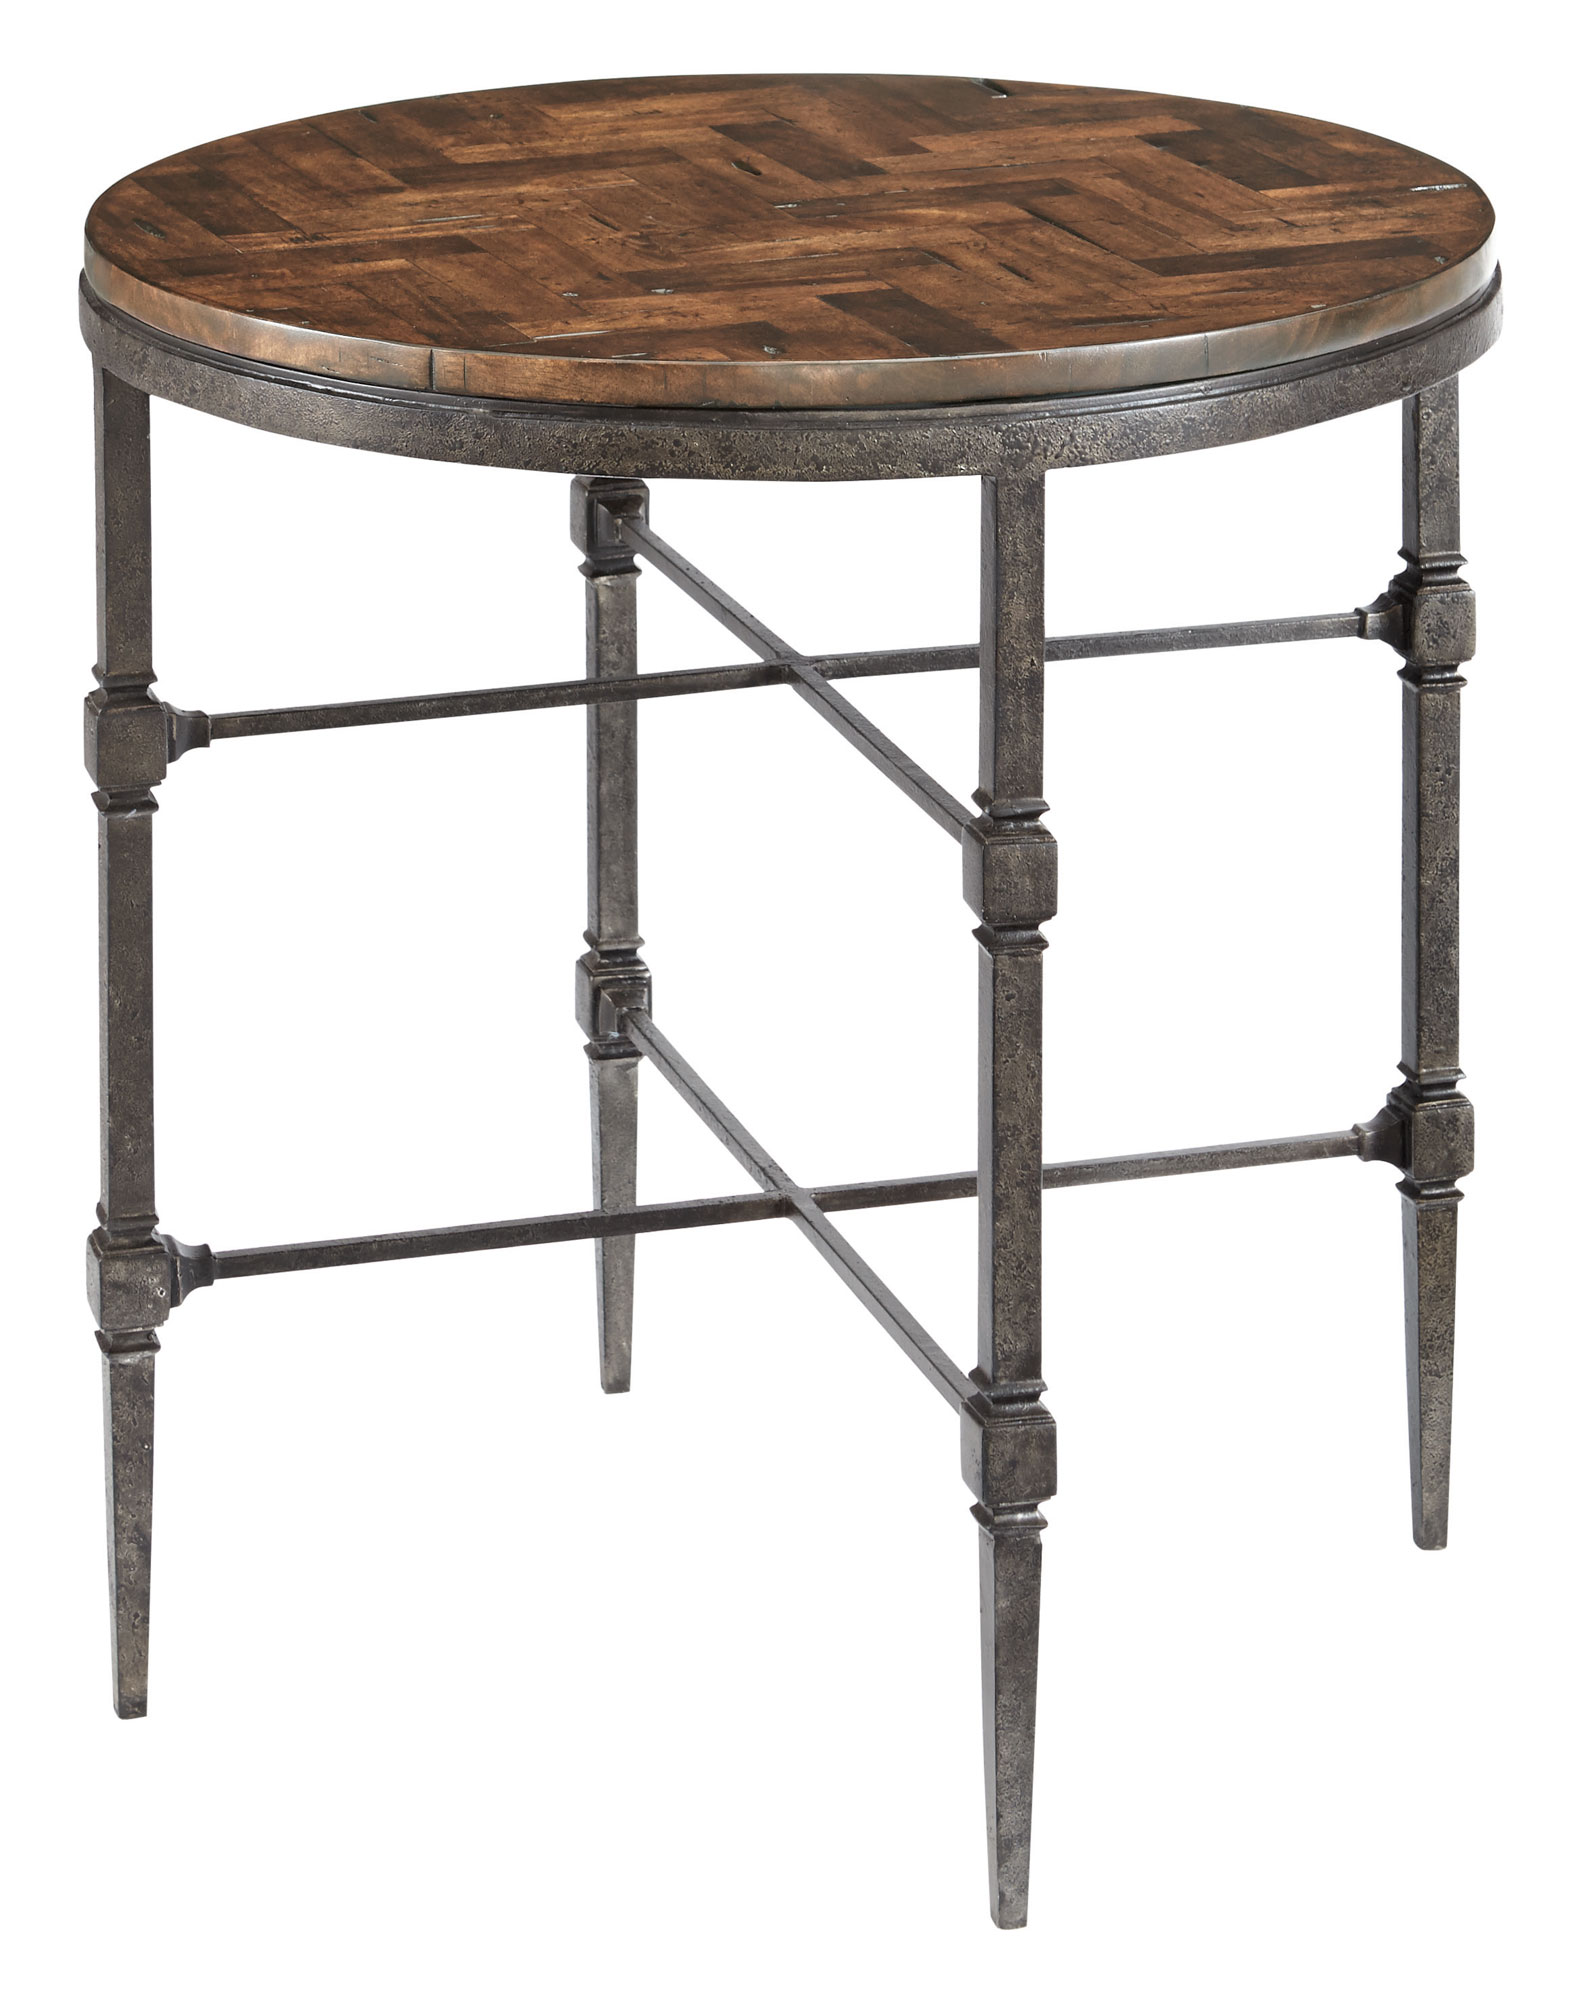 End Table with Wood Top and Metal Base | Bernhardt